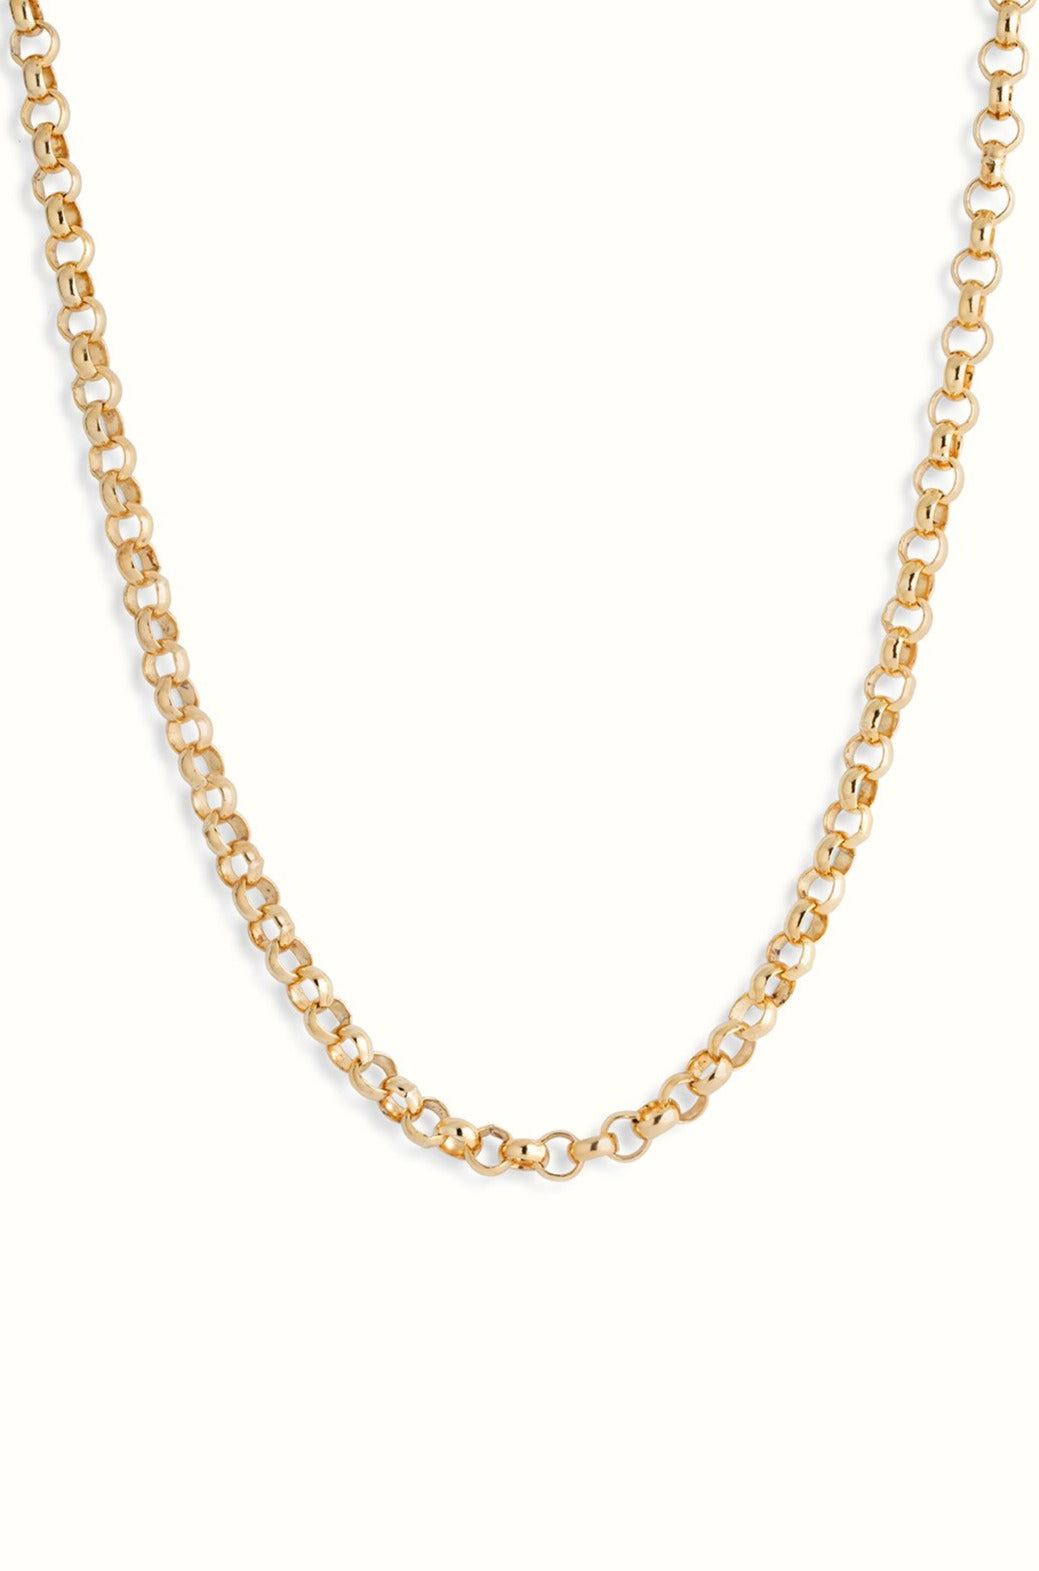 a chunky gold filled rolo chain necklace on a white background